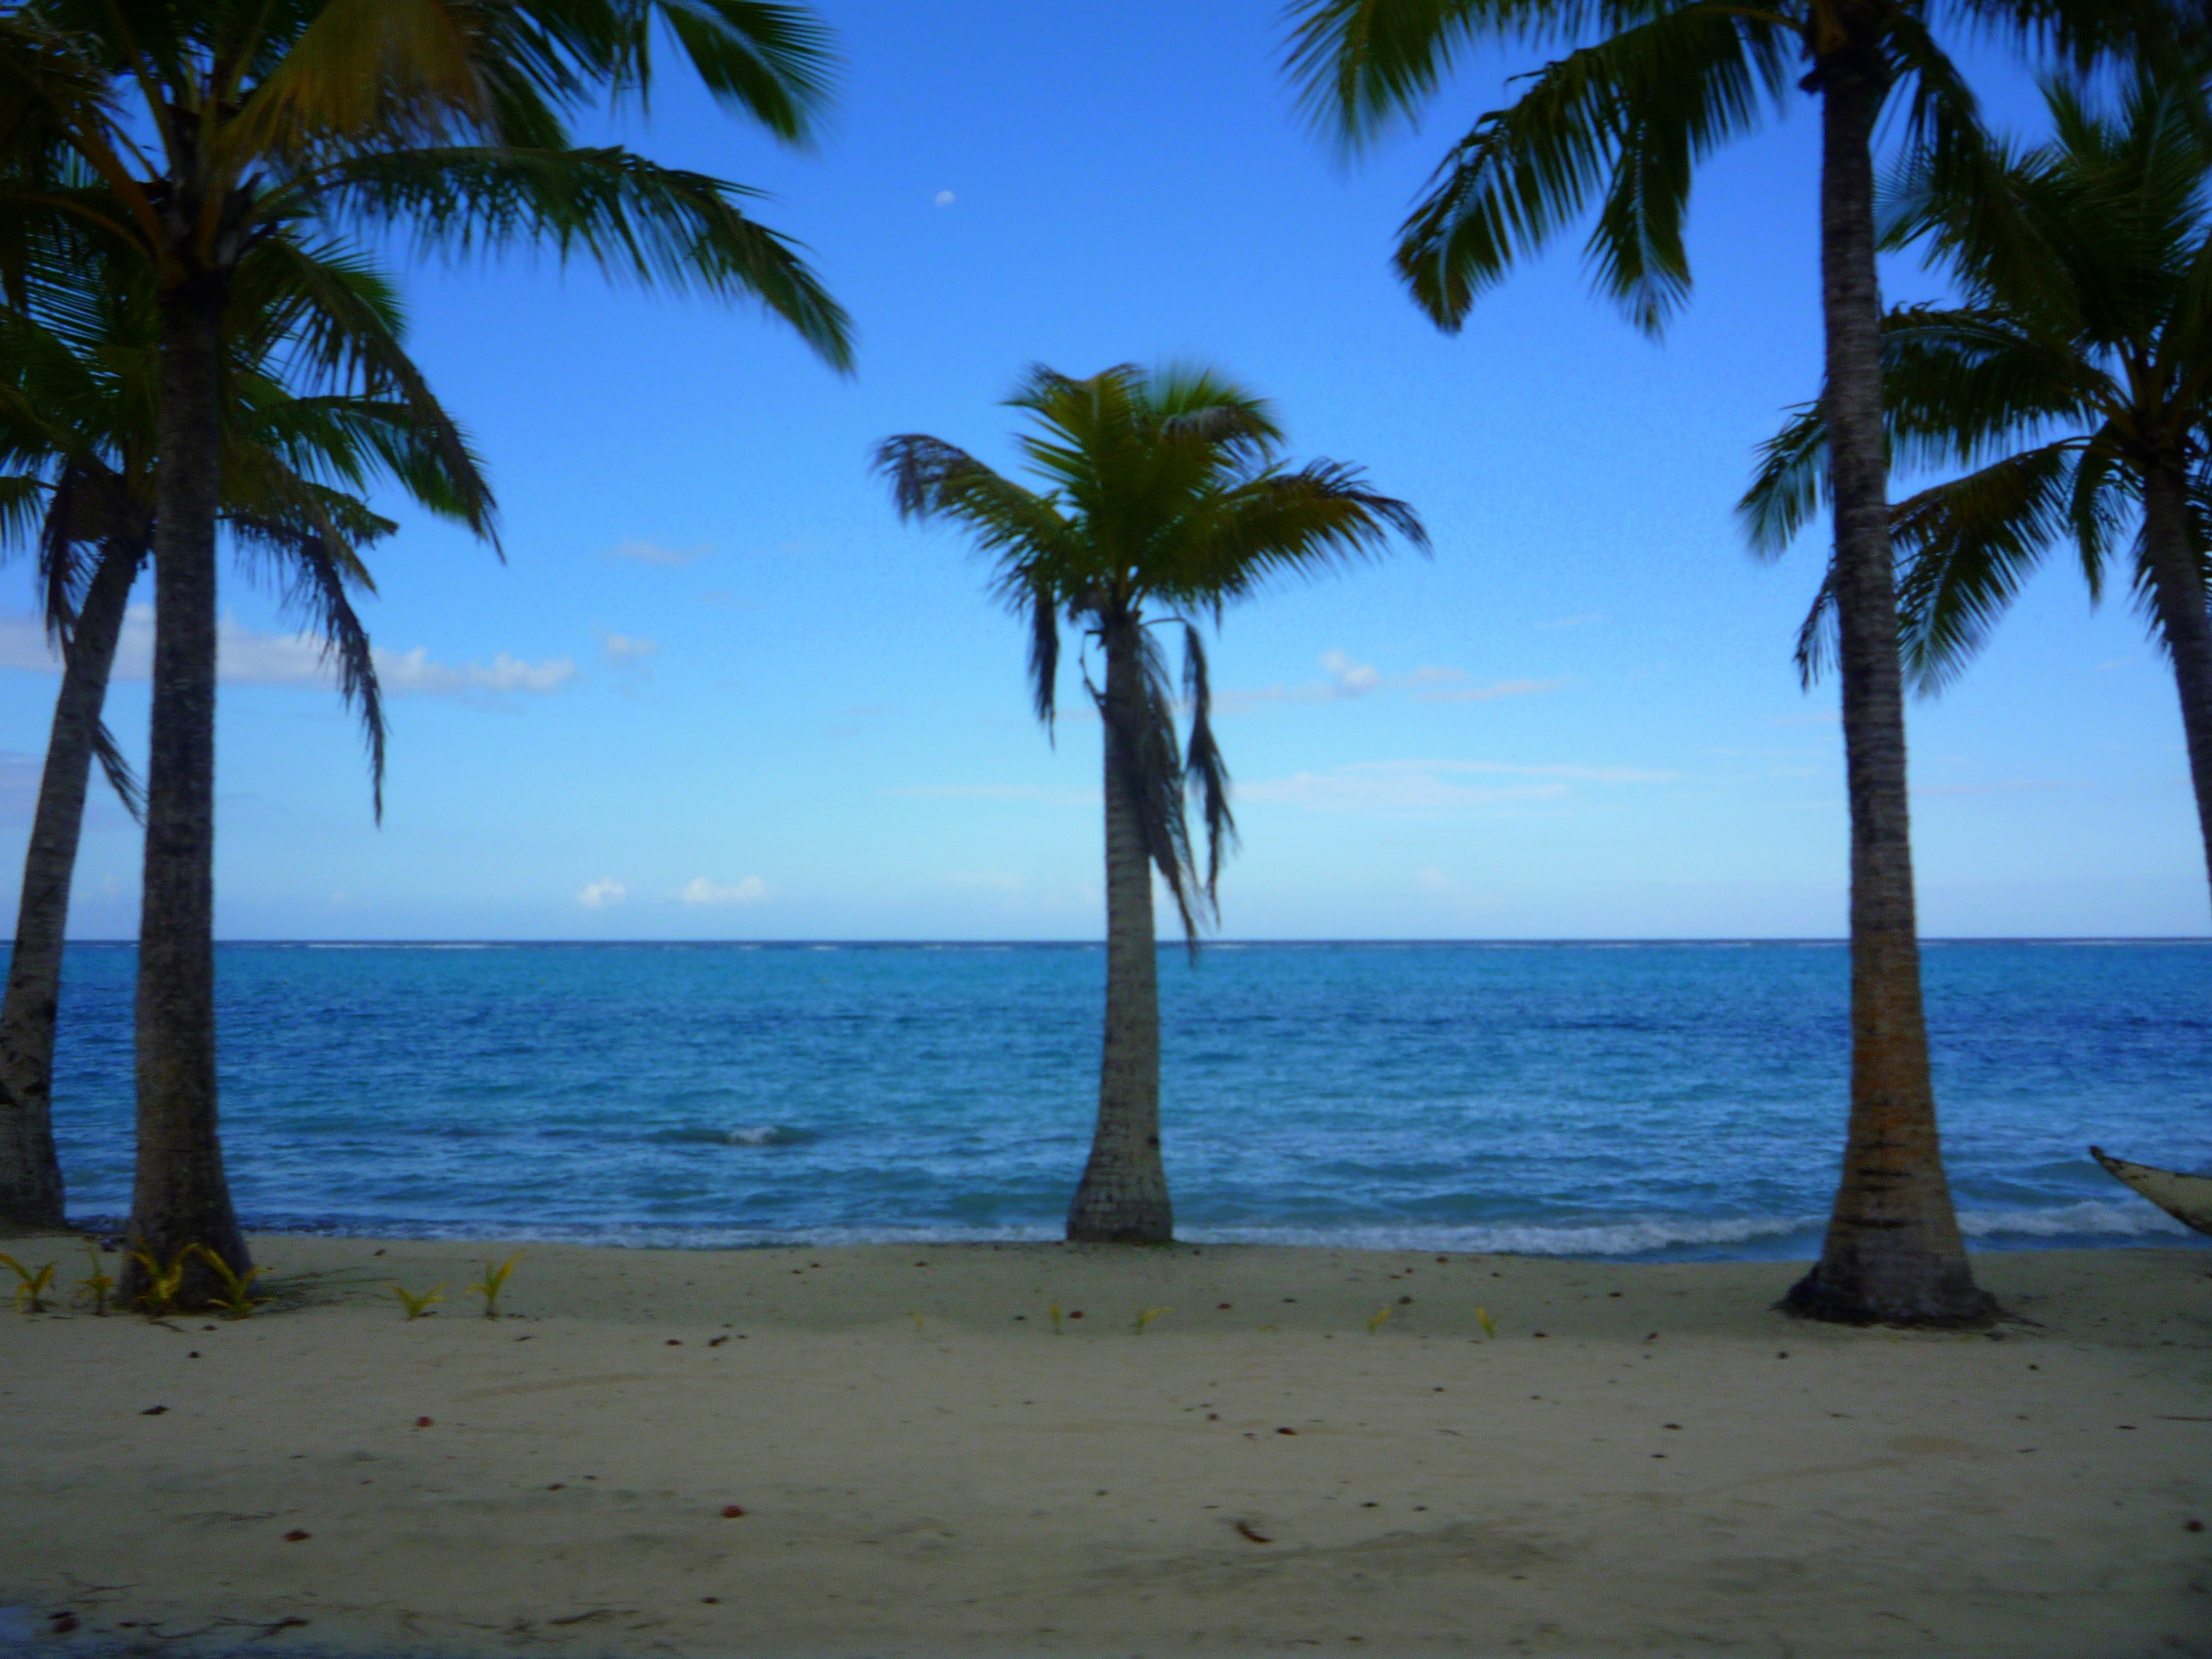 Exquisite beaches and clear seas, American Samoa